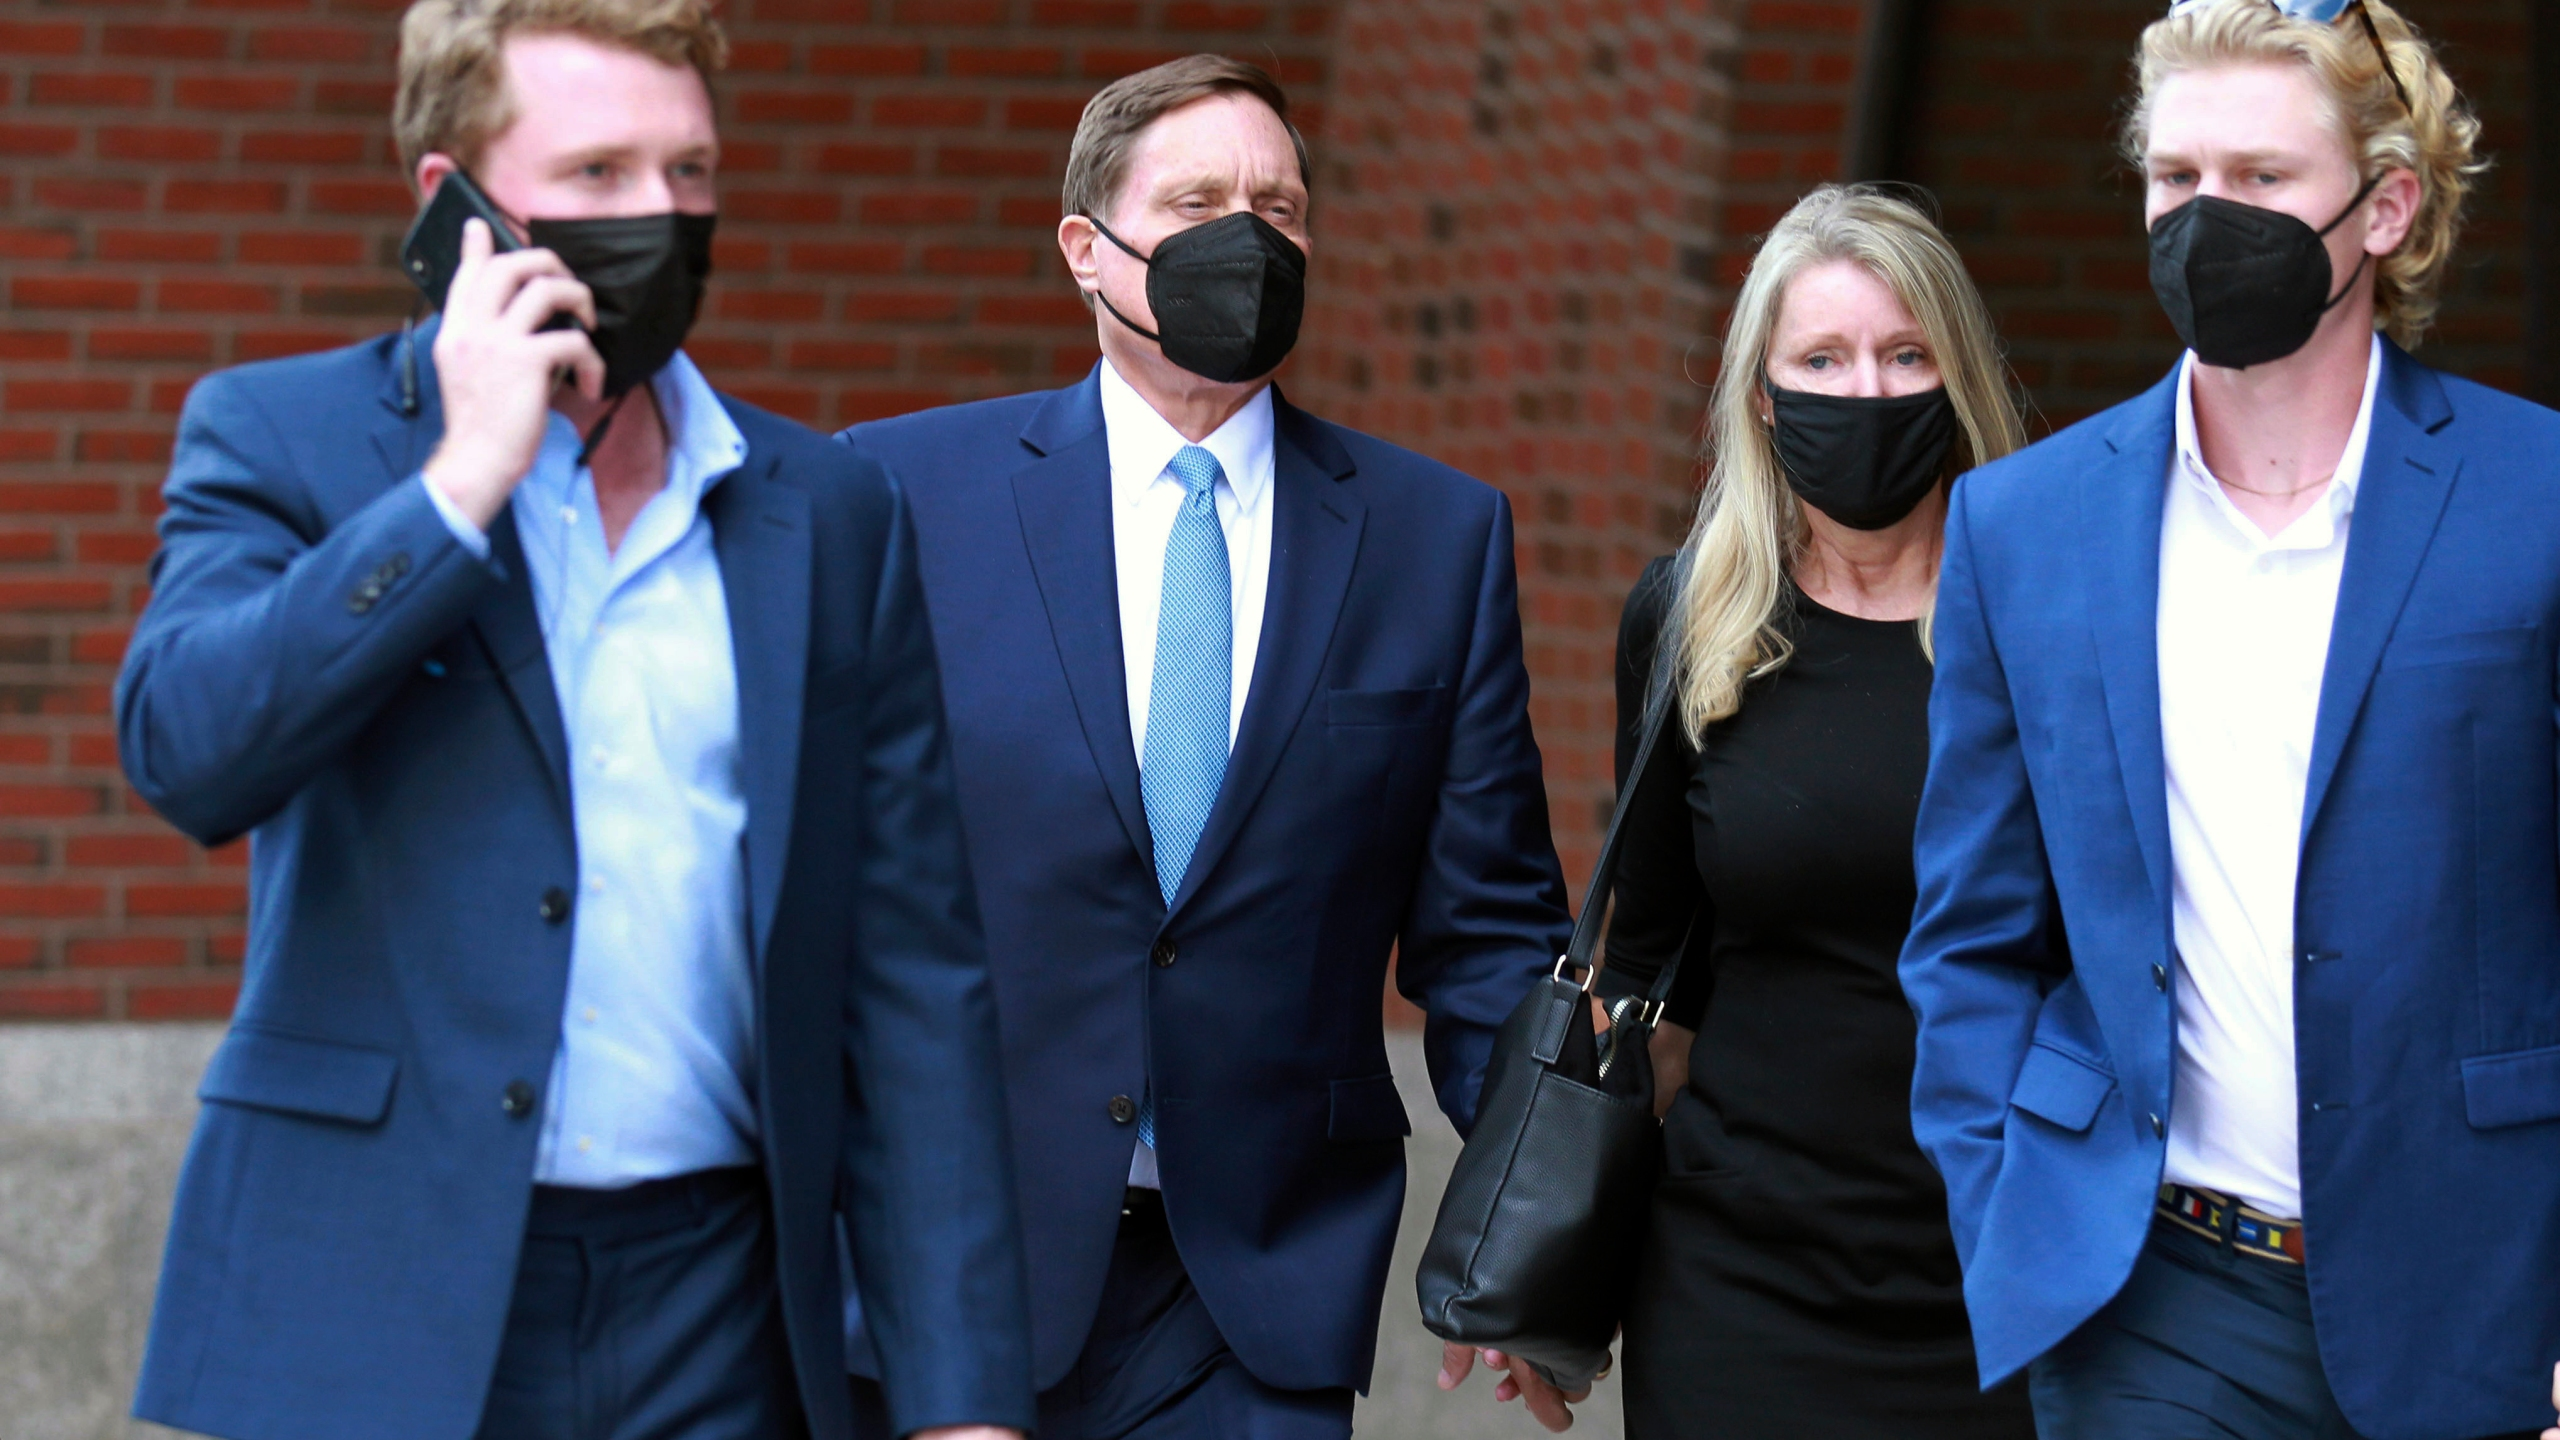 John Wilson, second left, holds his wife's hand, second right, as he leaves the John Joseph Moakley Federal Courthouse after the first day of his trial in the college admissions scandal on Sept.13, 2021, in Boston. (AP Photo/Stew Milne)